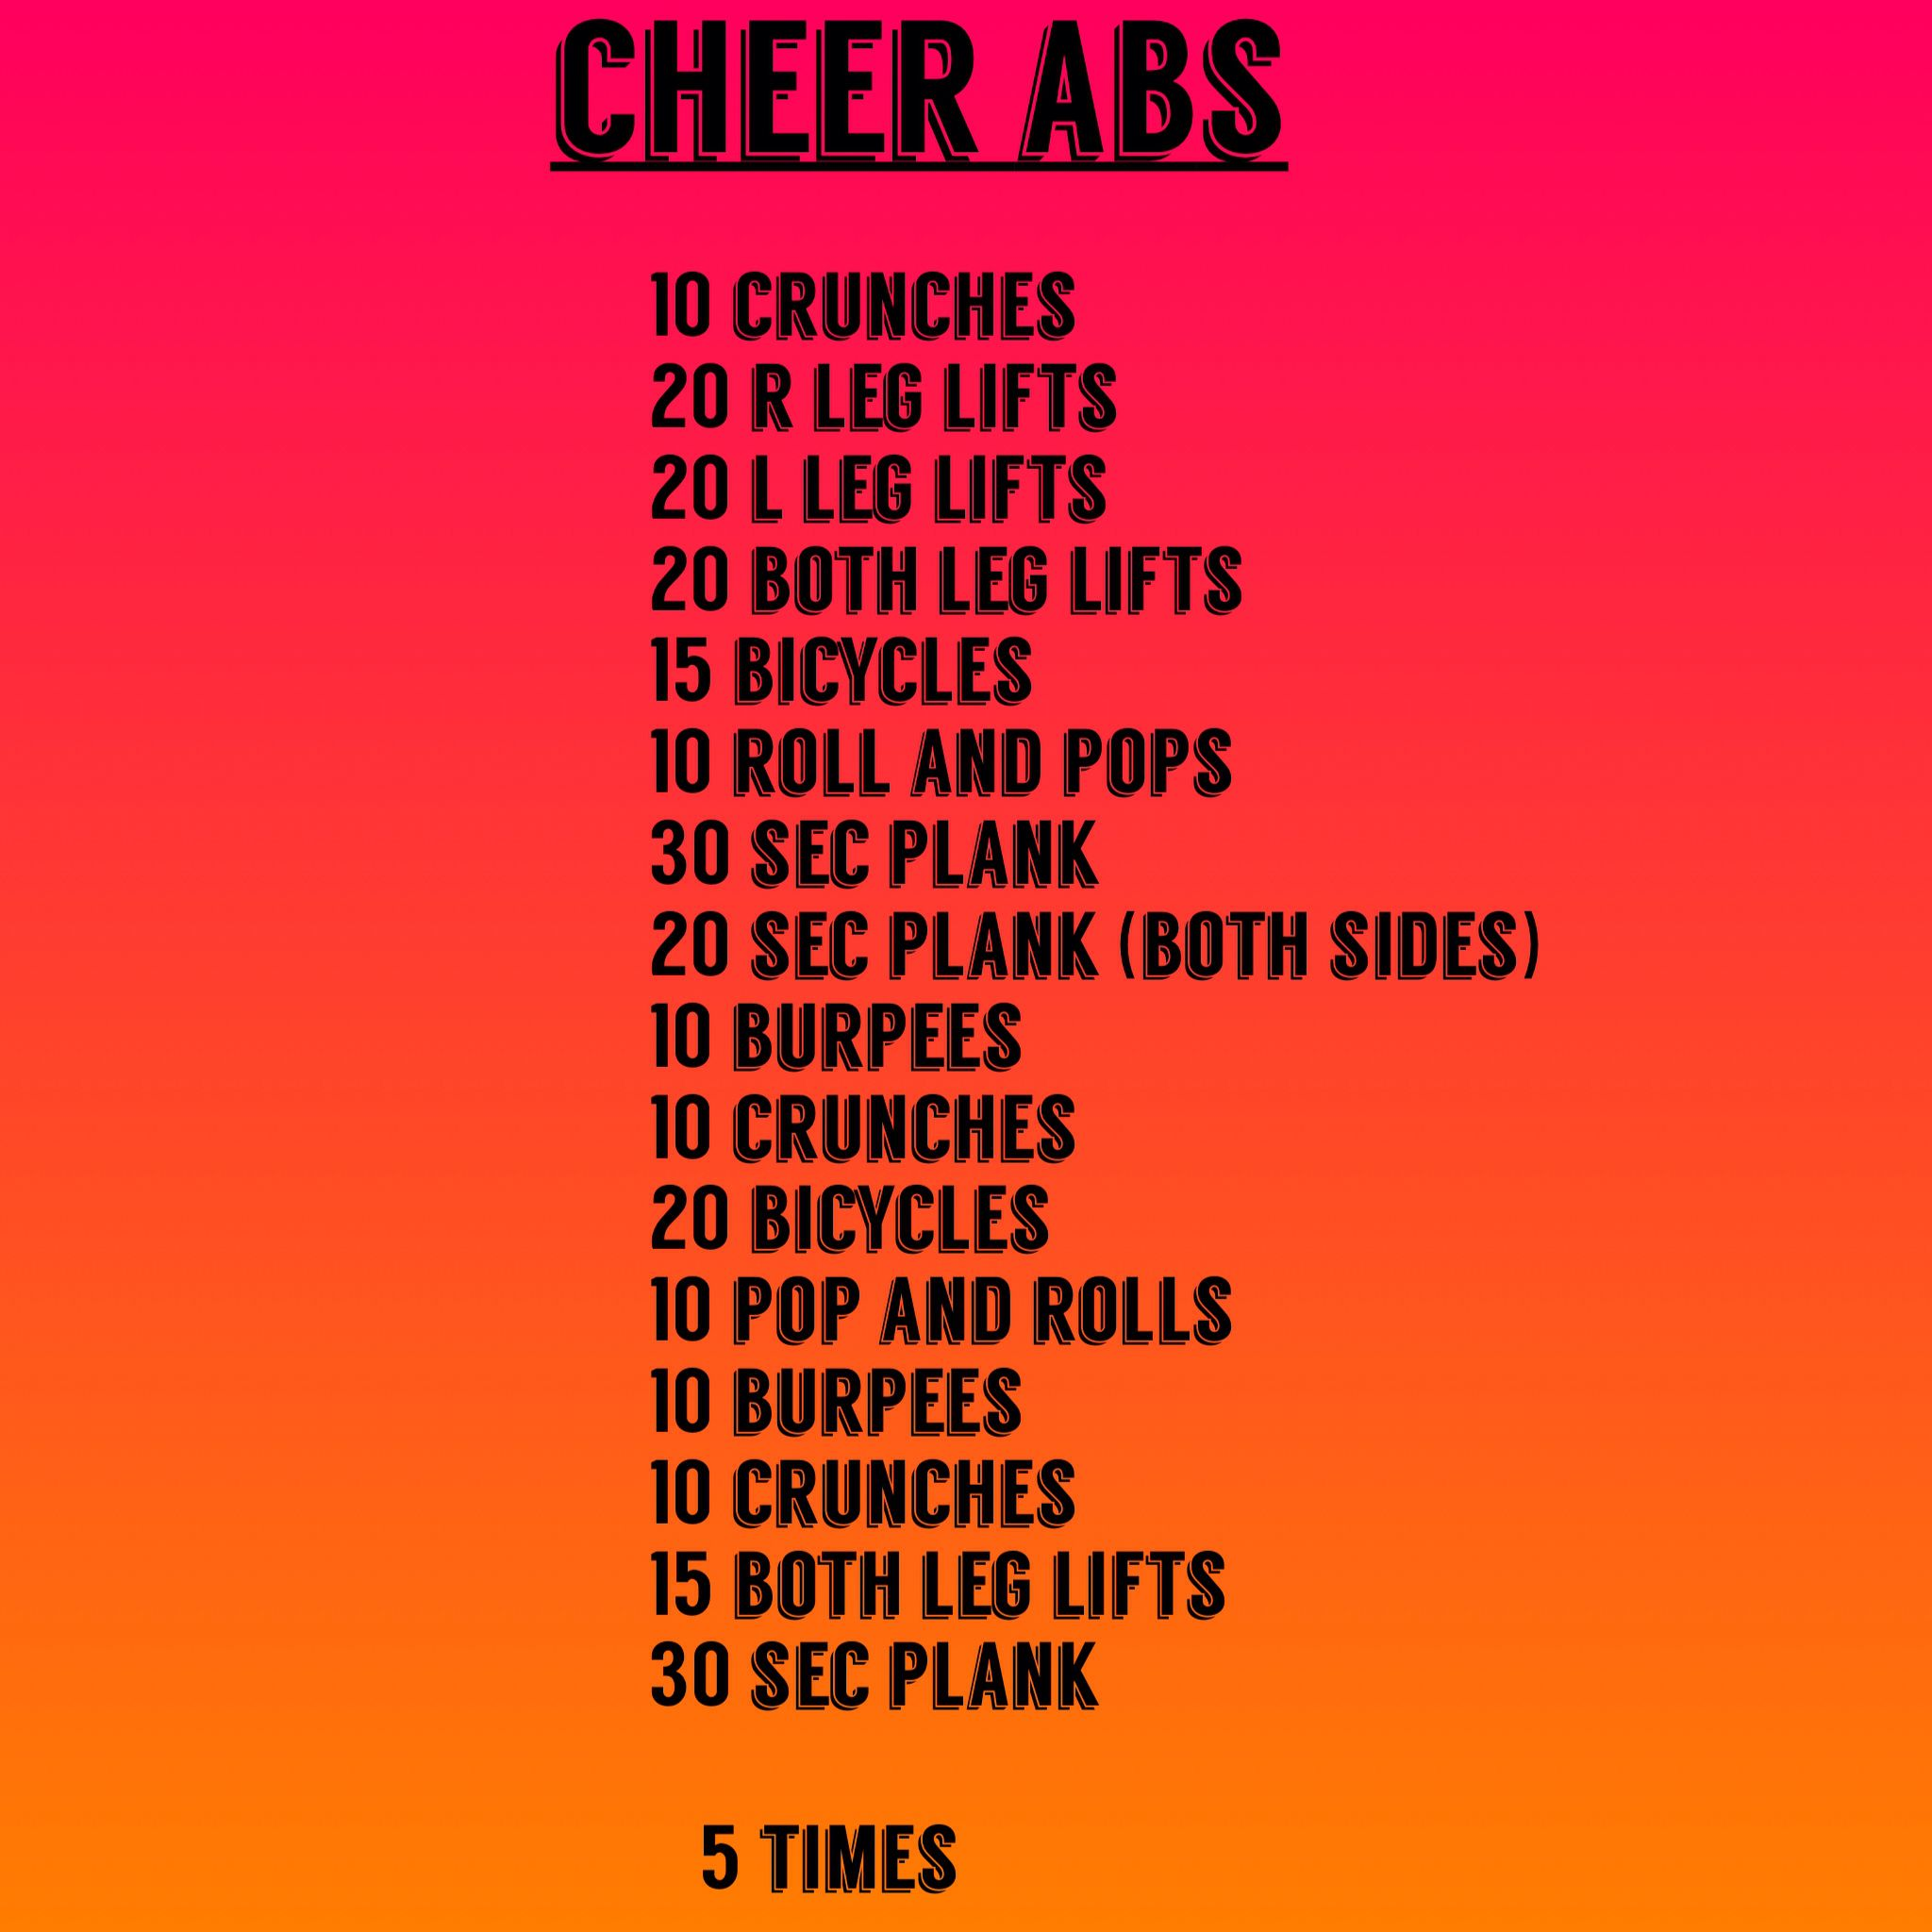 Cheer abs workout #cheerworkouts